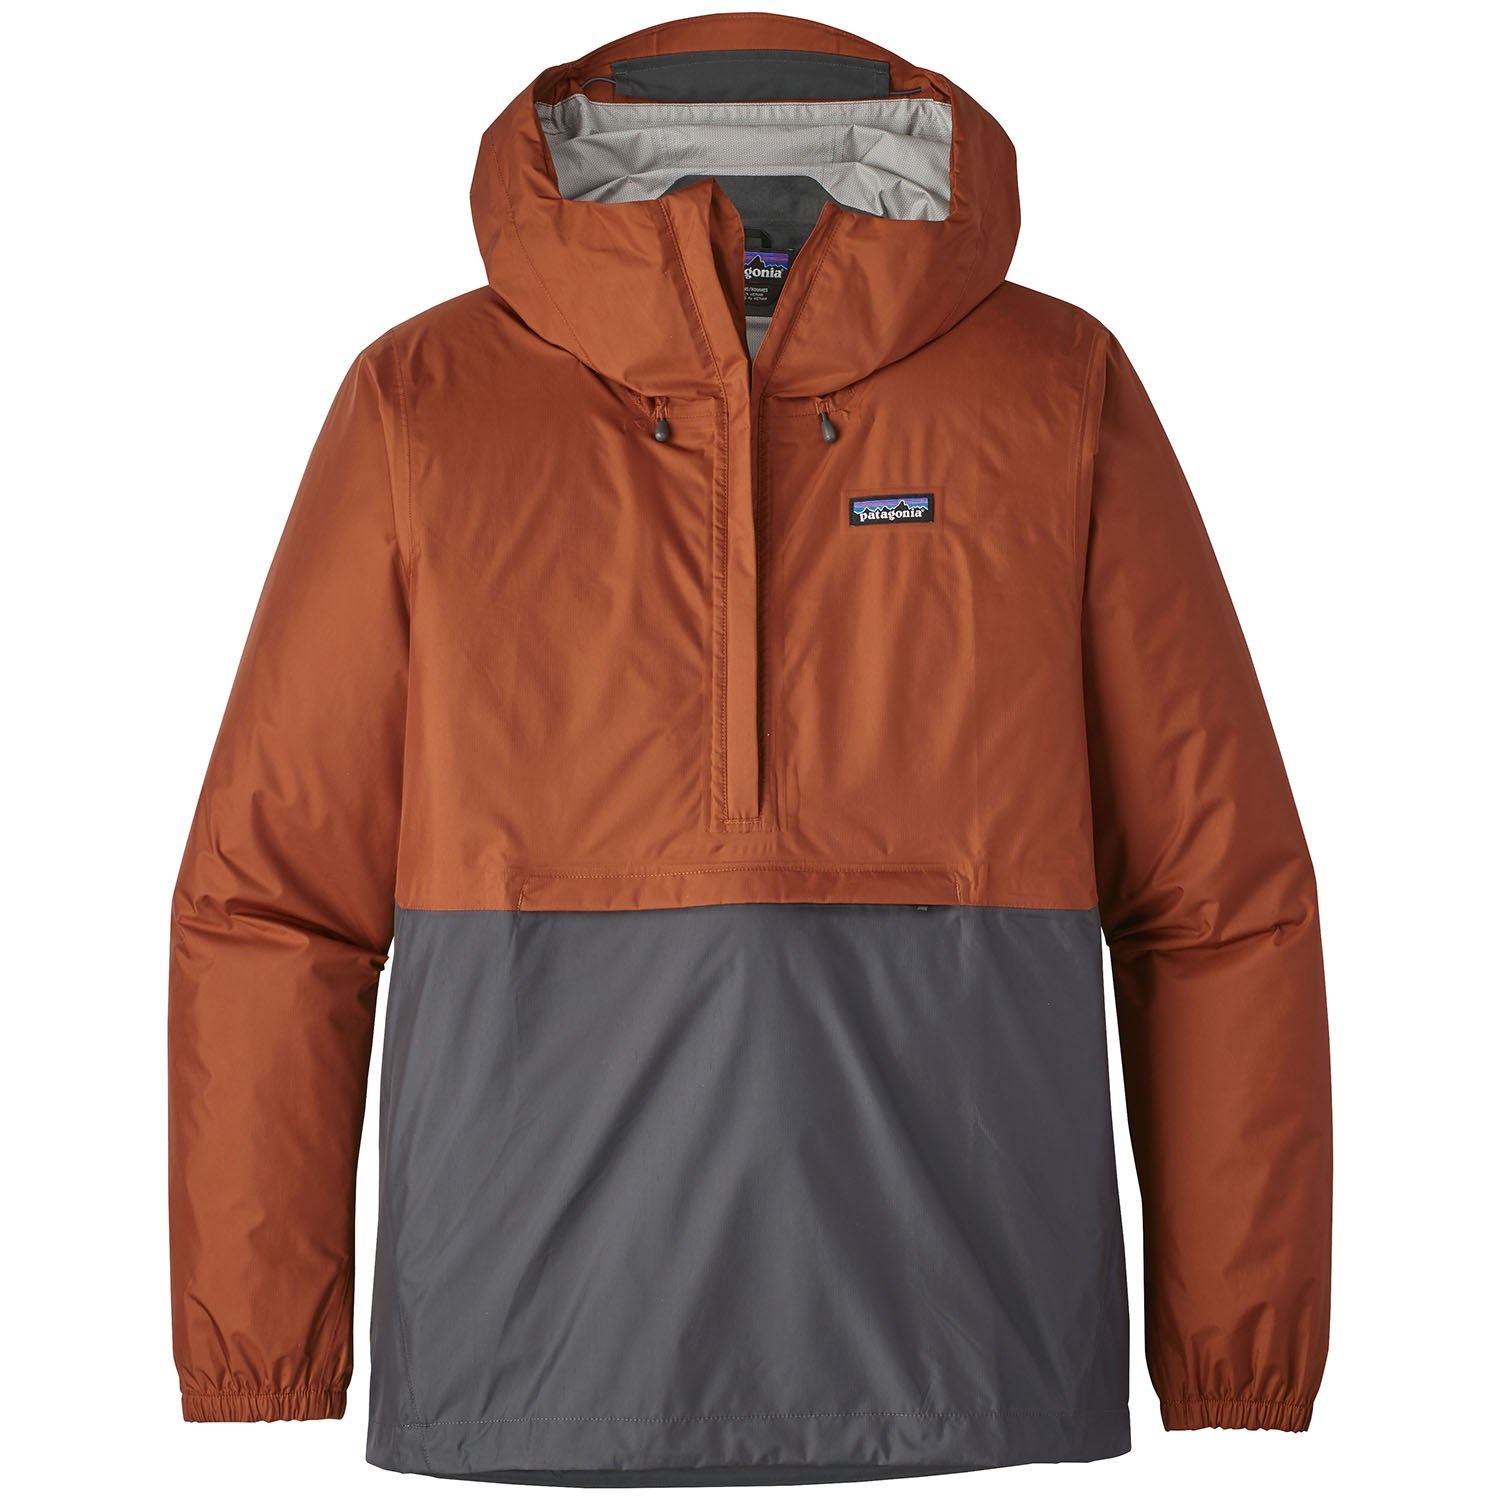 North face jacket how to wash